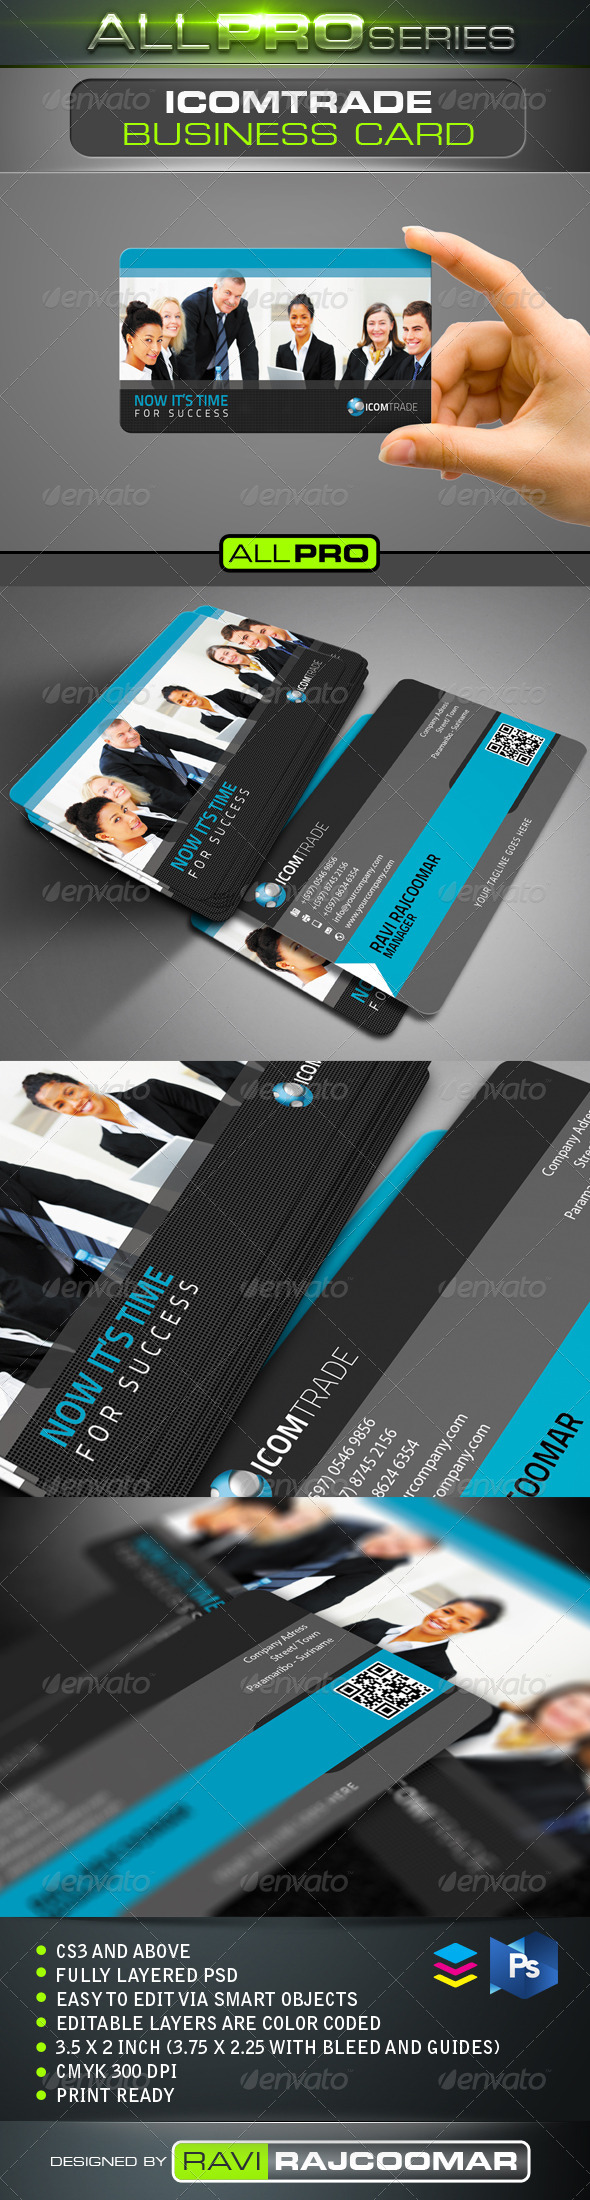 GraphicRiver Icomtrade Business Card 5123486